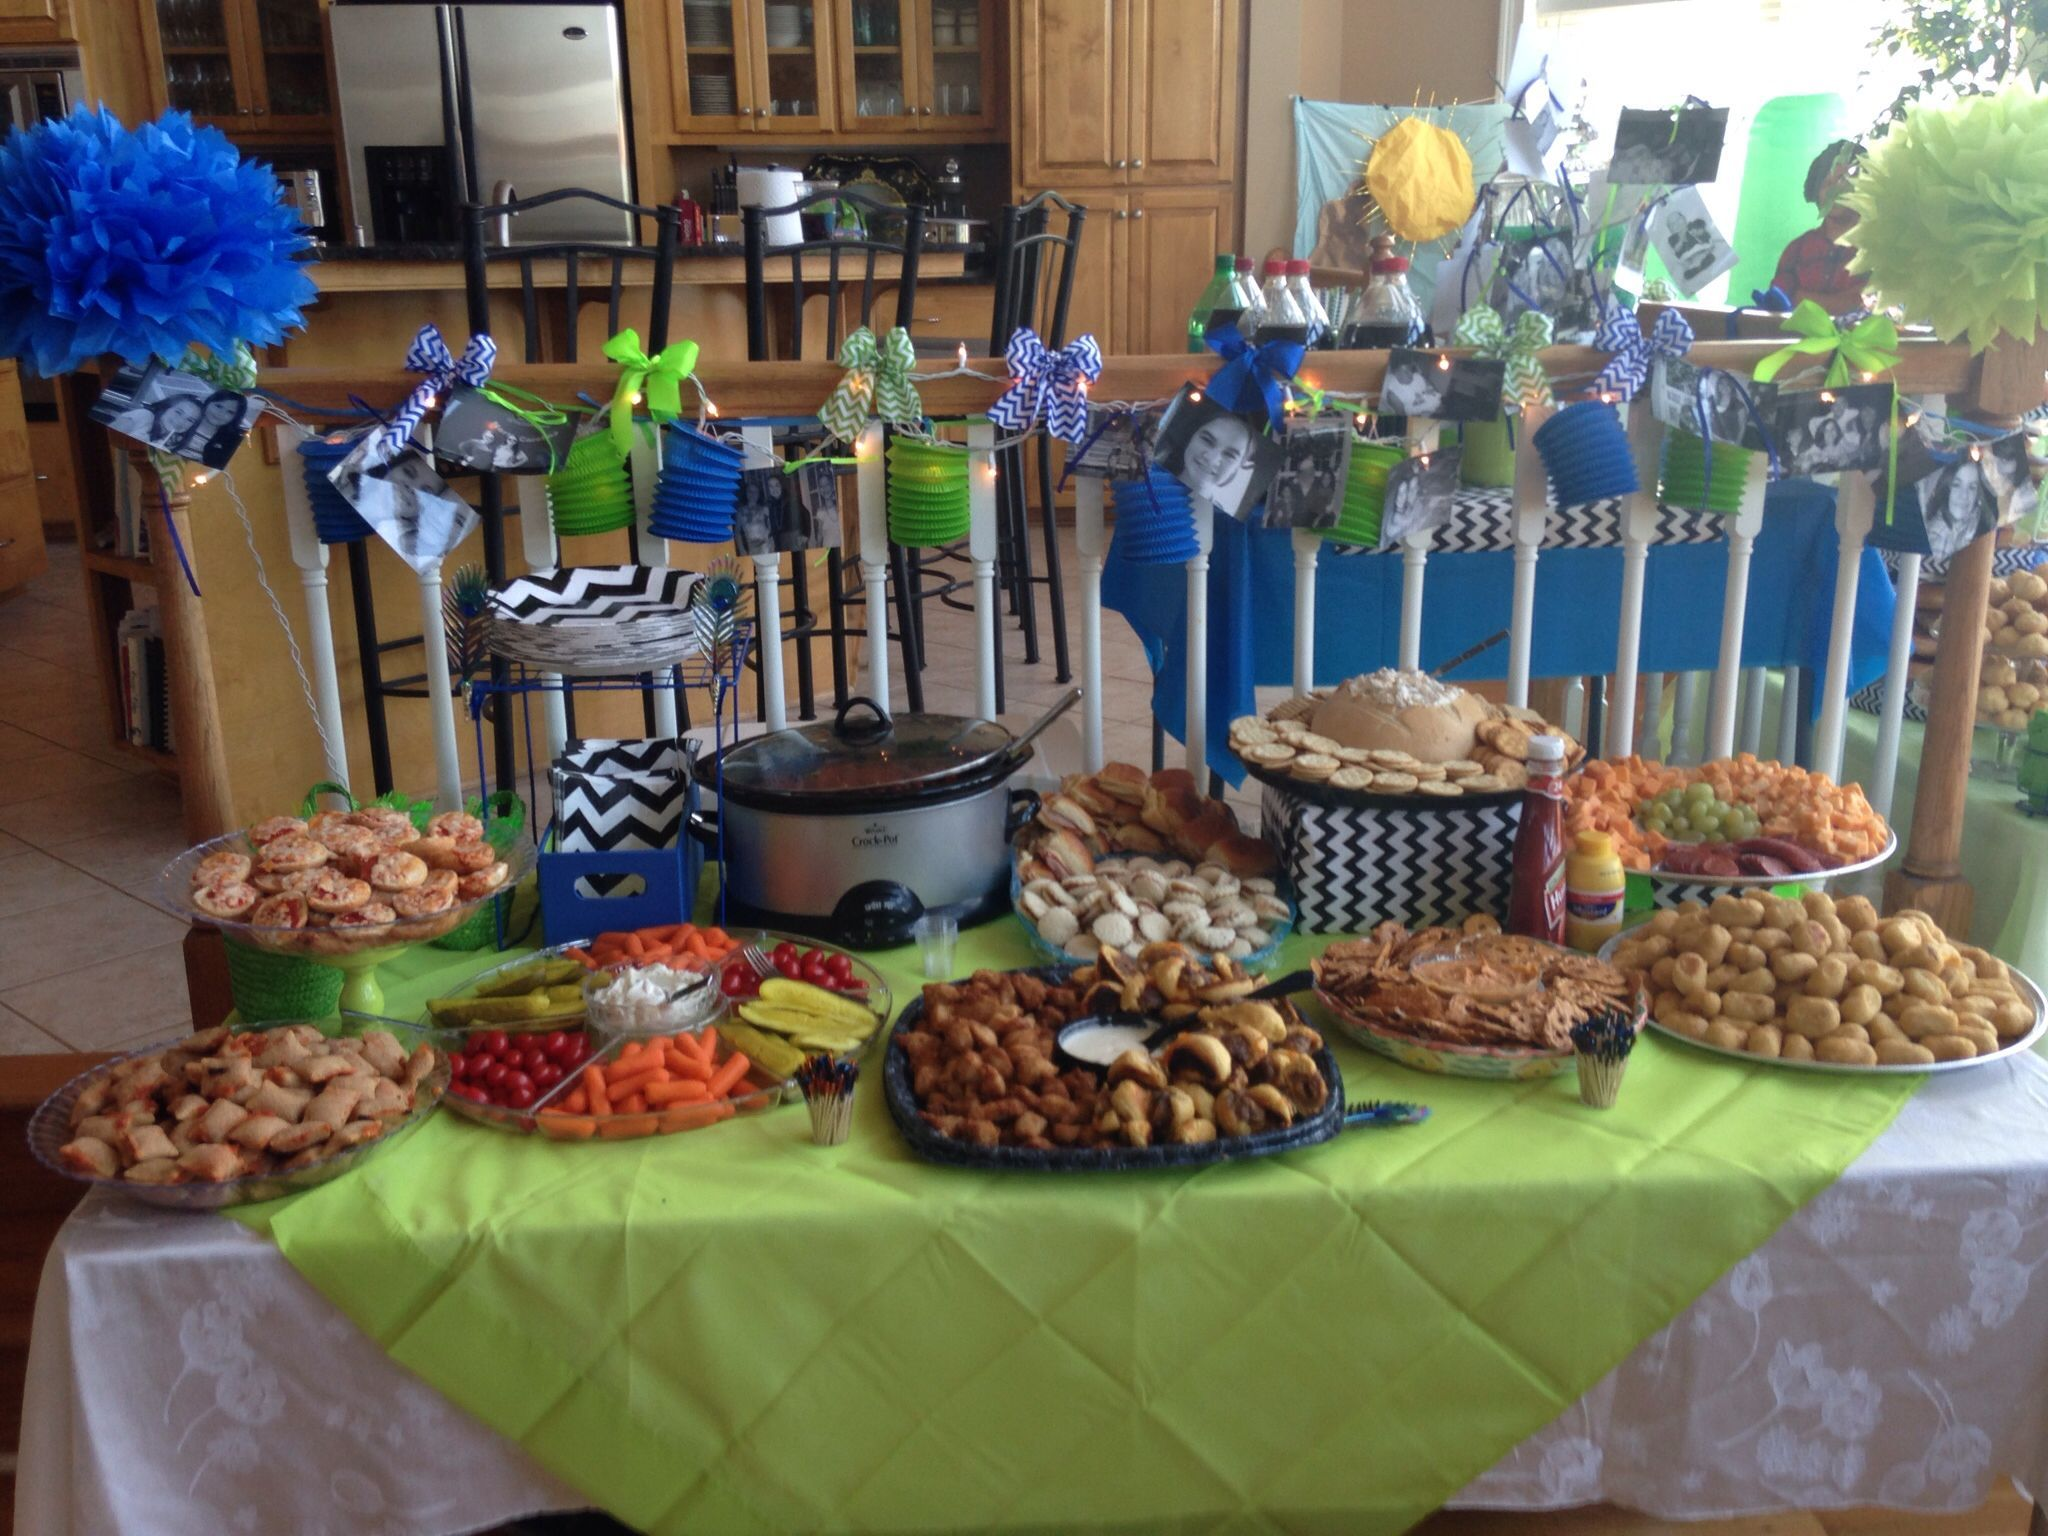 12 Year Old Boy Birthday Party Ideas Birthday Party For Teens Boy Birthday Parties Fun Birthday Party